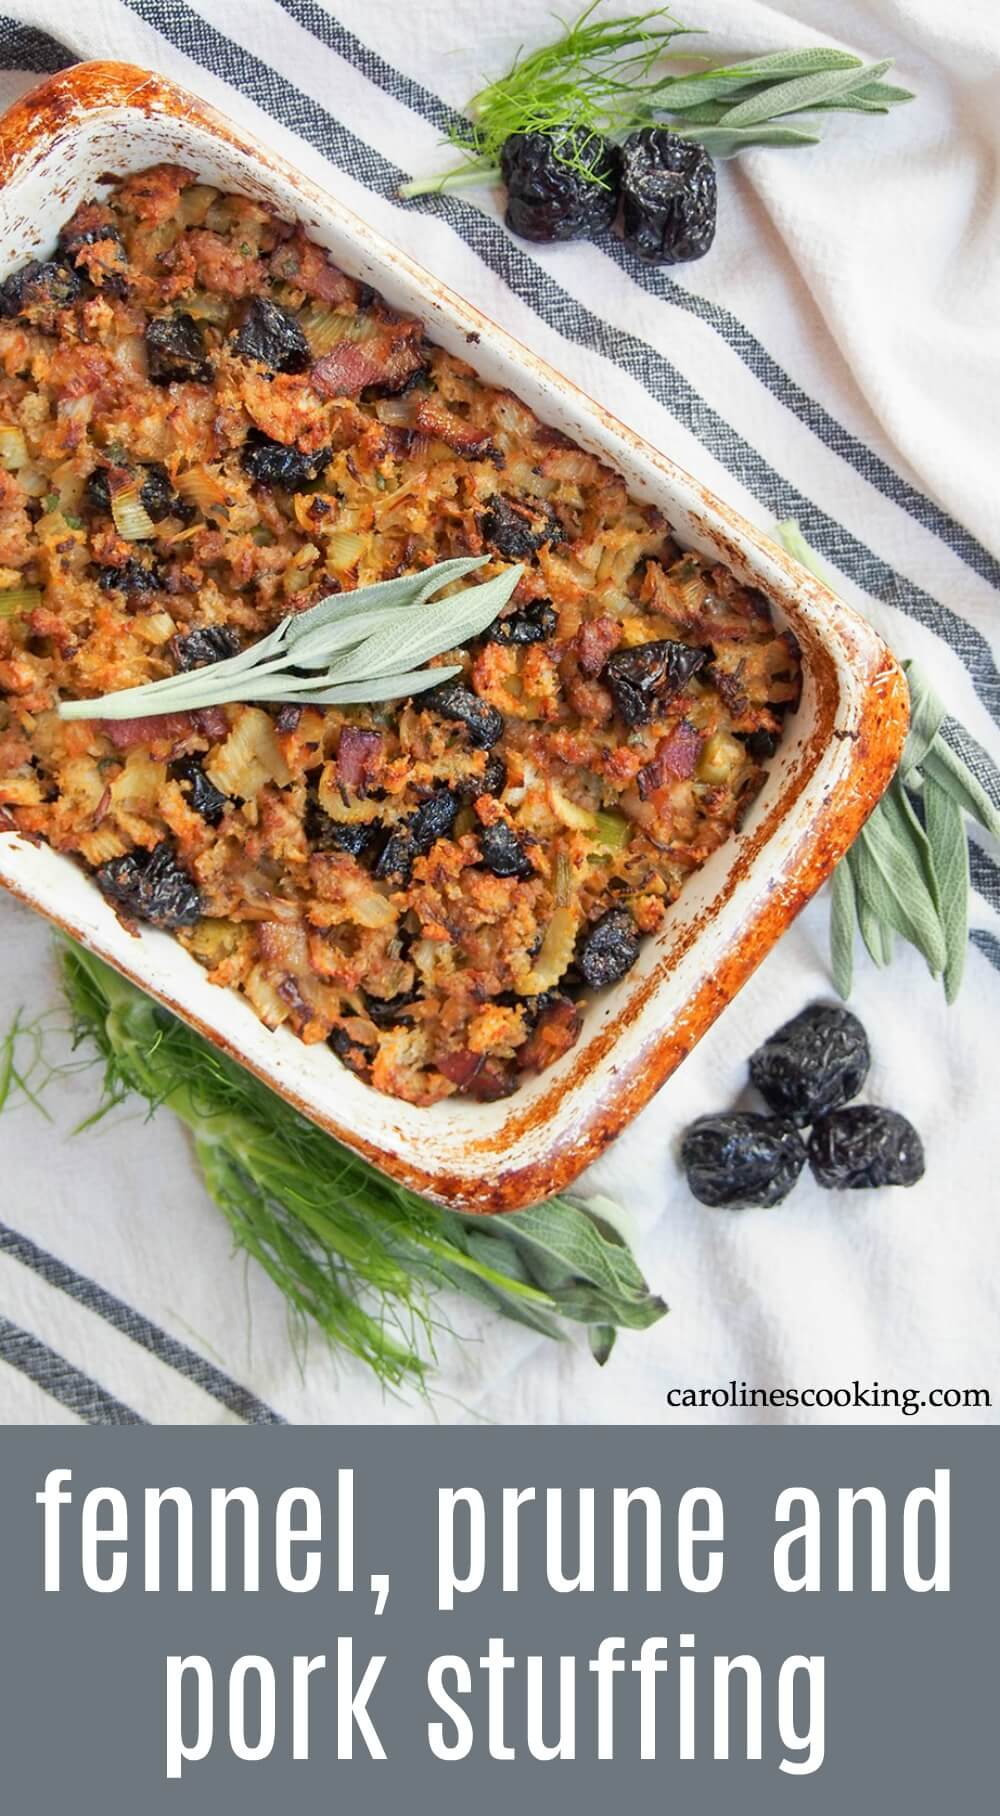 This fennel, prune and pork stuffing is easy to put together with a delicious combination of savory flavors with little bursts of sweet prune mixed in. A wonderful accompaniment to a festive meal.